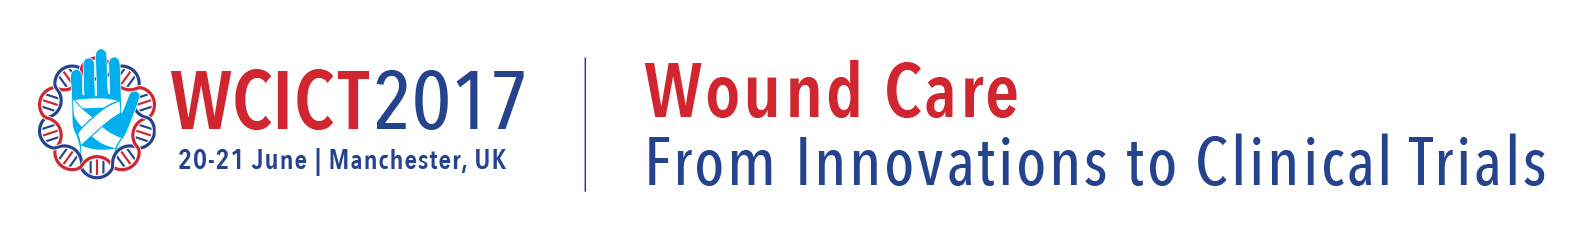 Wound Care: From Innovations to Clinical Trials